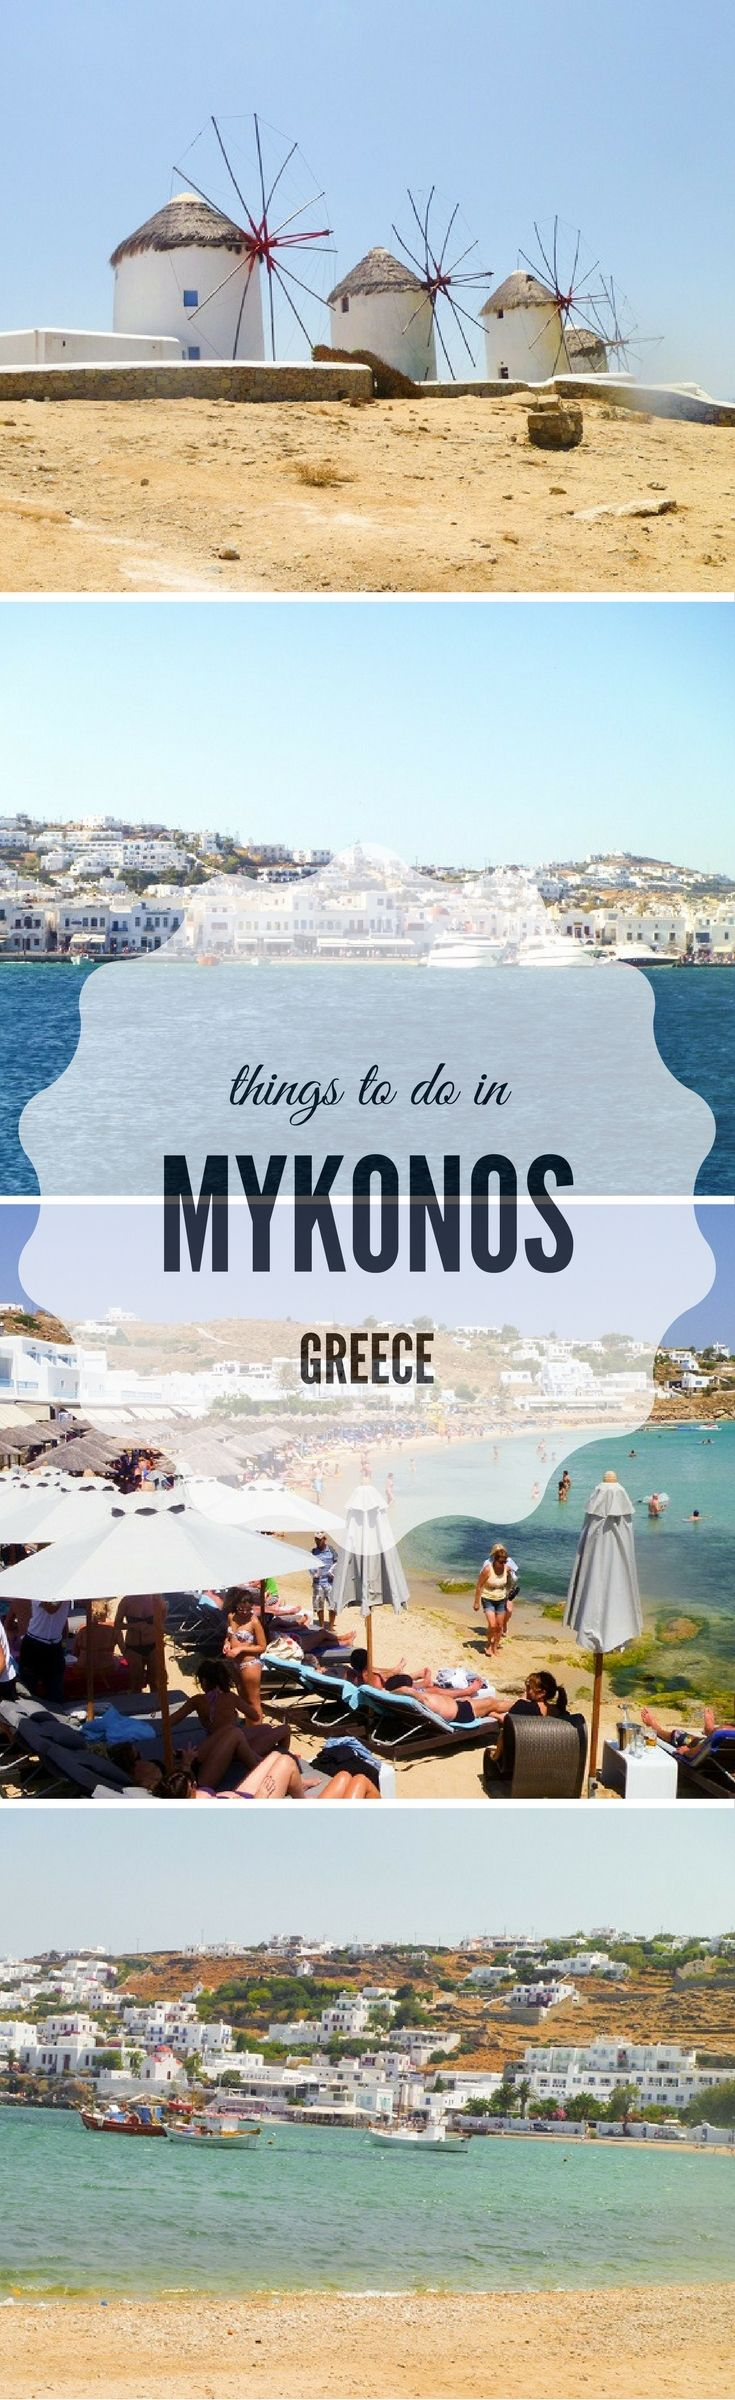 Looking to enjoy warm sunny weather, beautiful beaches, sites to explore, and amazing Mediterranean cuisine? Here are the top 5 things to do in Mykonos!